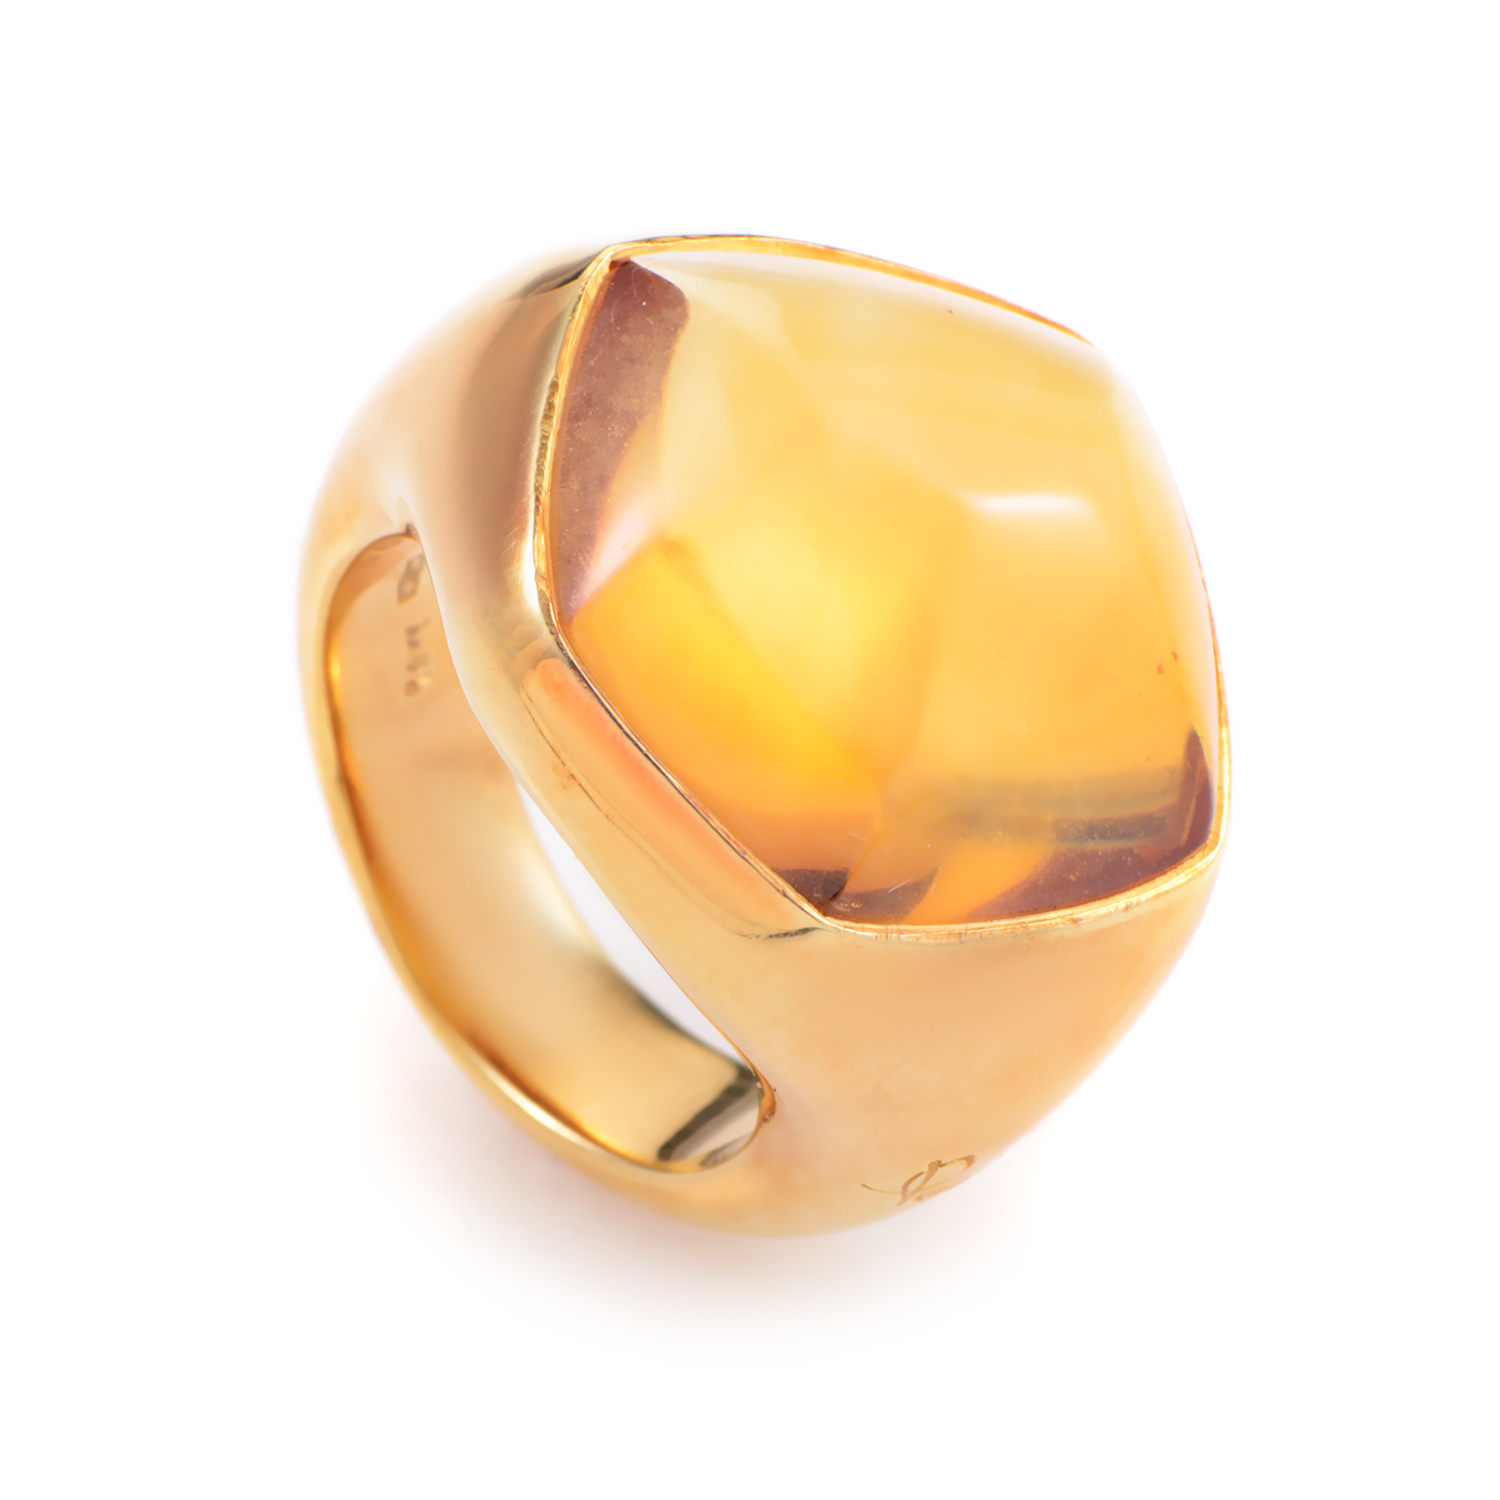 Pomellato 18K Yellow Gold Citrine Ring AK1B2757